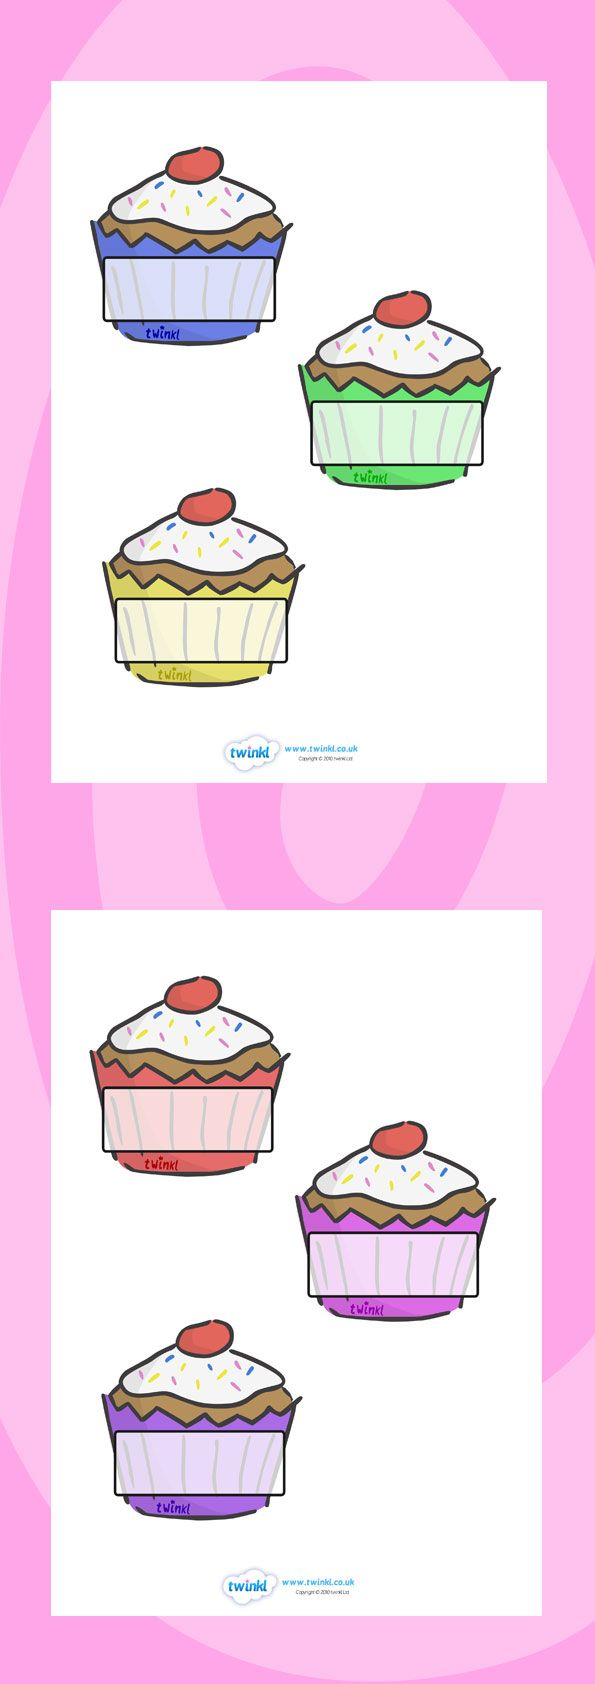 Twinkl Resources >> Editable Self Registration Labels (Cupcakes)   >> Thousands of printable primary teaching resources for EYFS, KS1, KS2 and beyond! self registration, register, editable, labels, registration, child name label, printable labels, cupcakes, baking, cake,